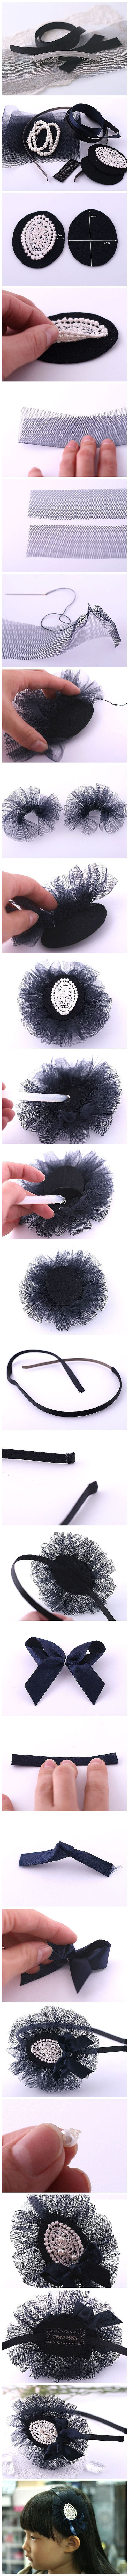 Black headbands for crafts -